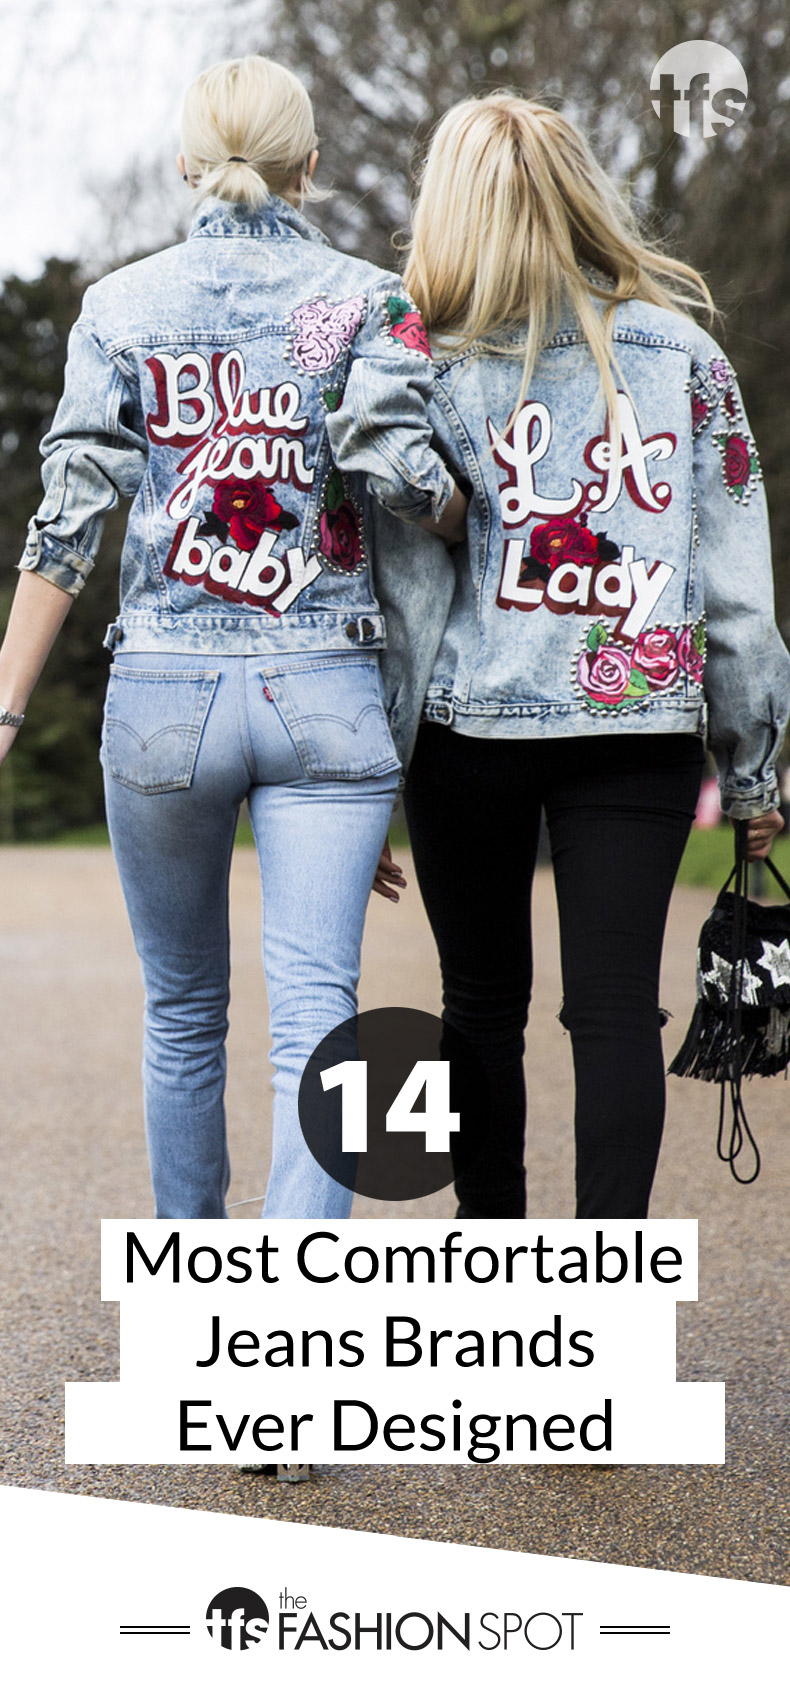 Top 14 Most Comfortable Jeans Brands Ever Designed